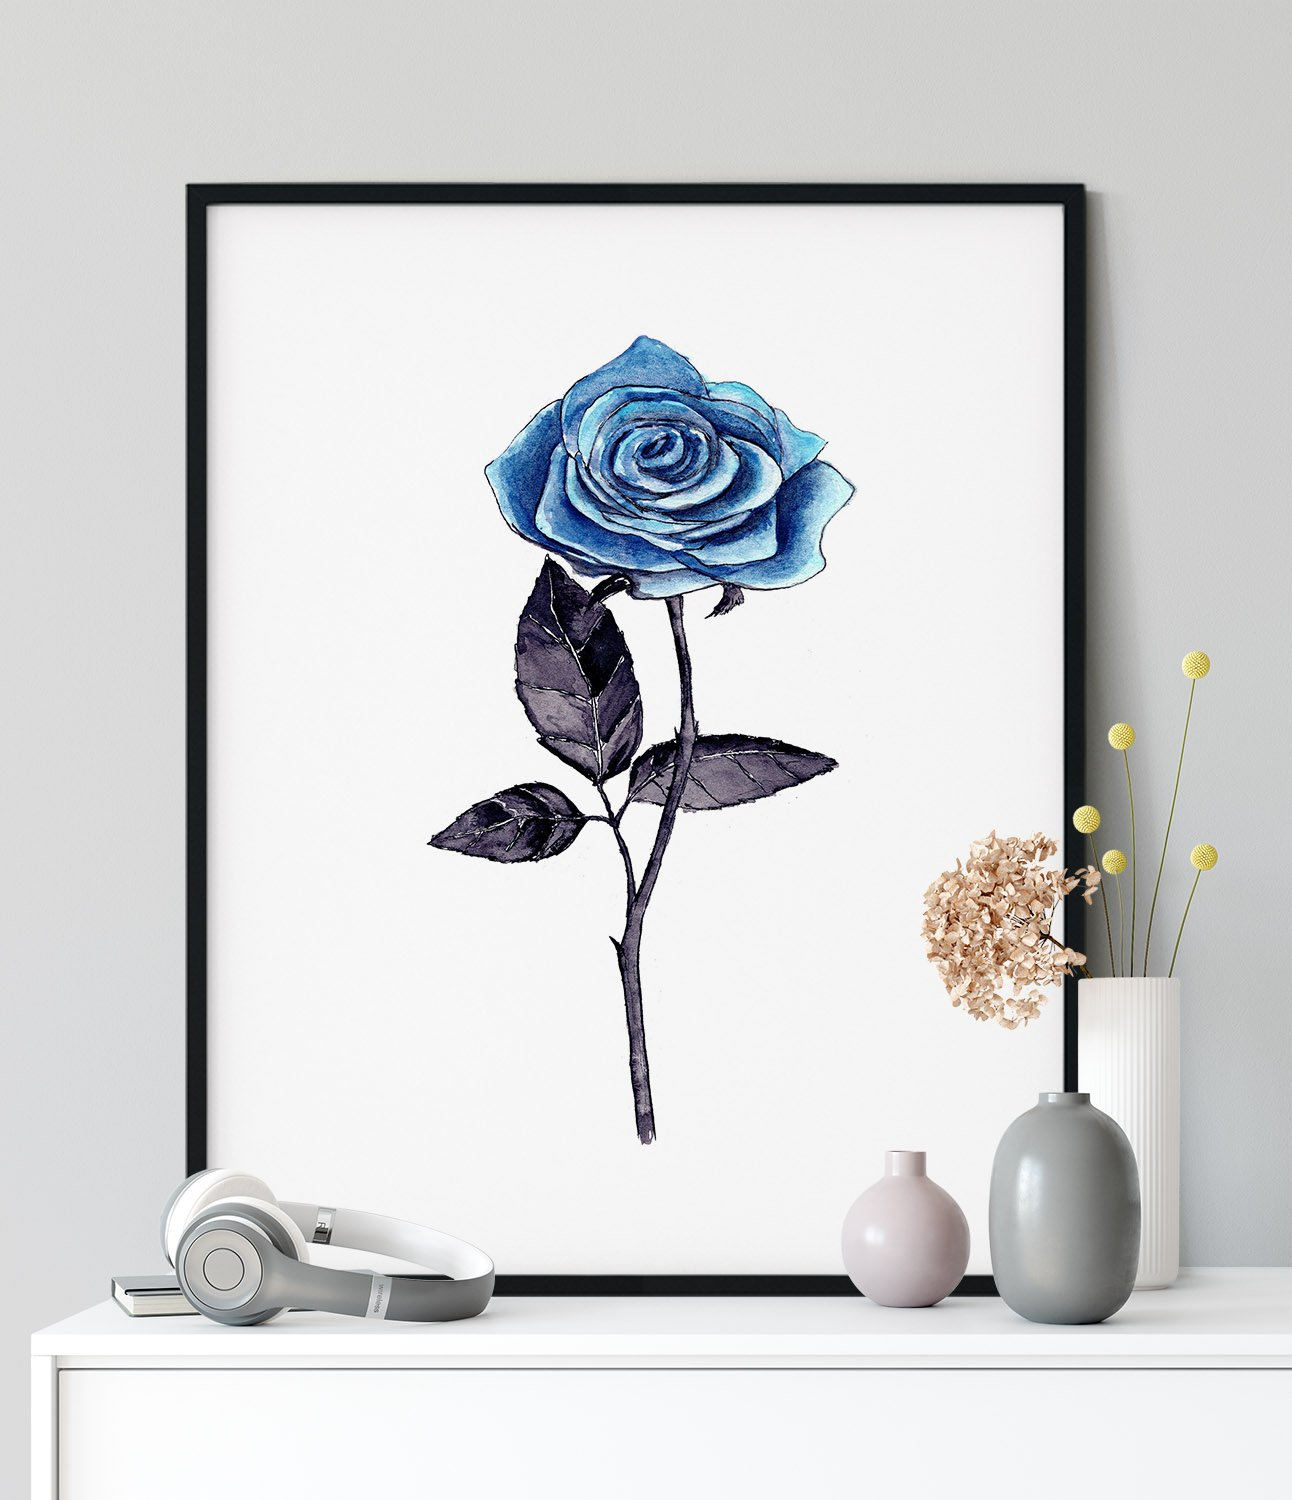 rose-blue-flower-framed-art-print